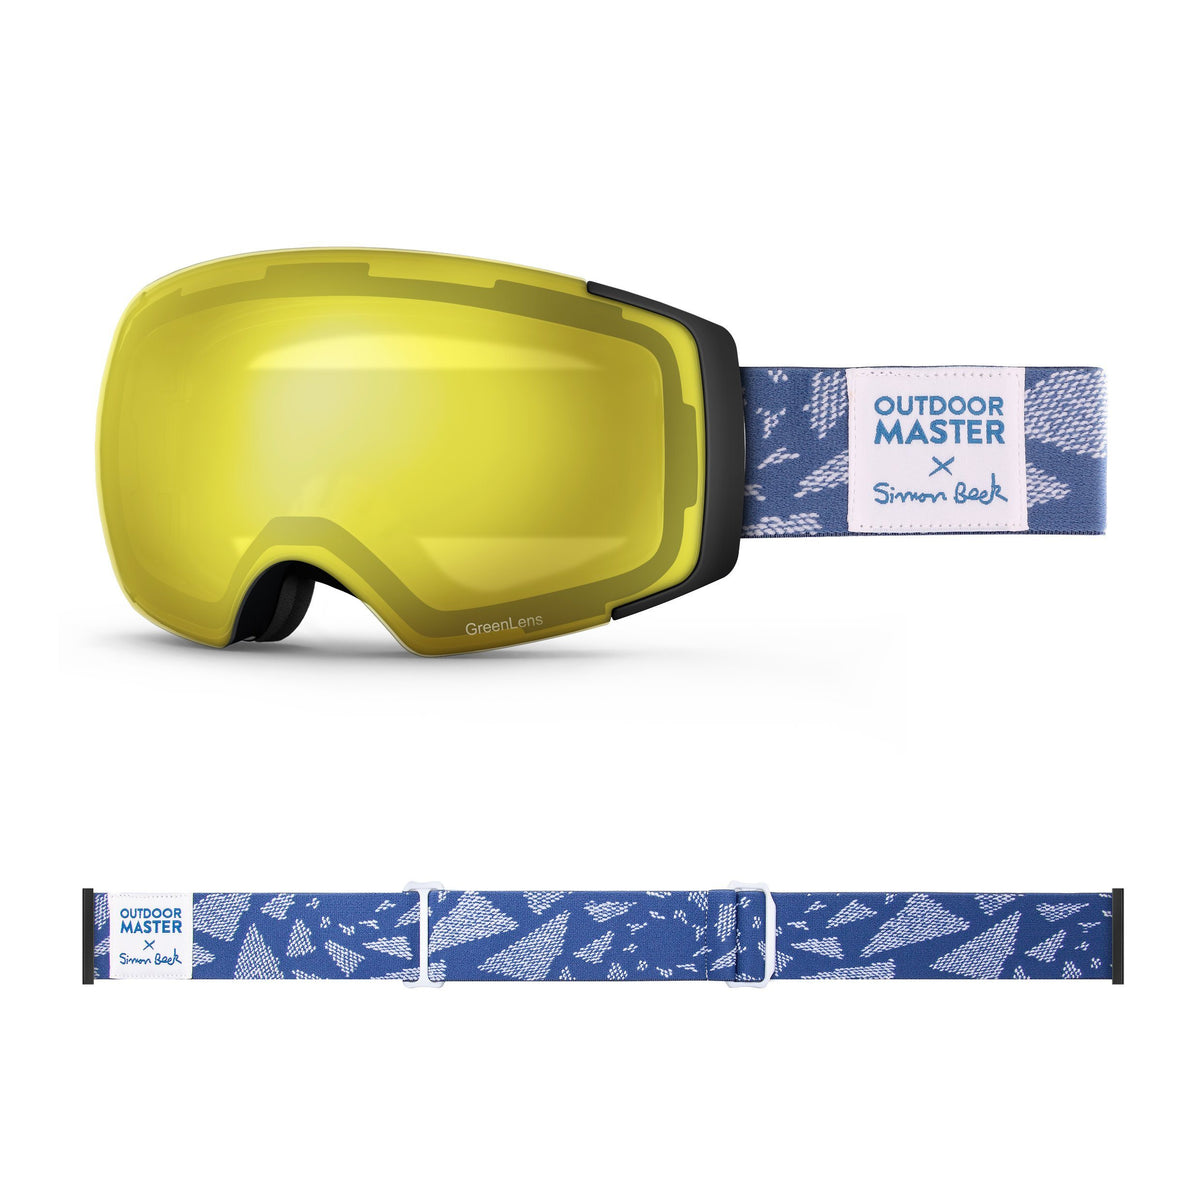 OutdoorMaster x Simon Beck Ski Goggles Pro Series - Snowshoeing Art Limited Edition OutdoorMaster GreenLens VLT 75% TAC Yellow Lens Polarized Flying Triangles